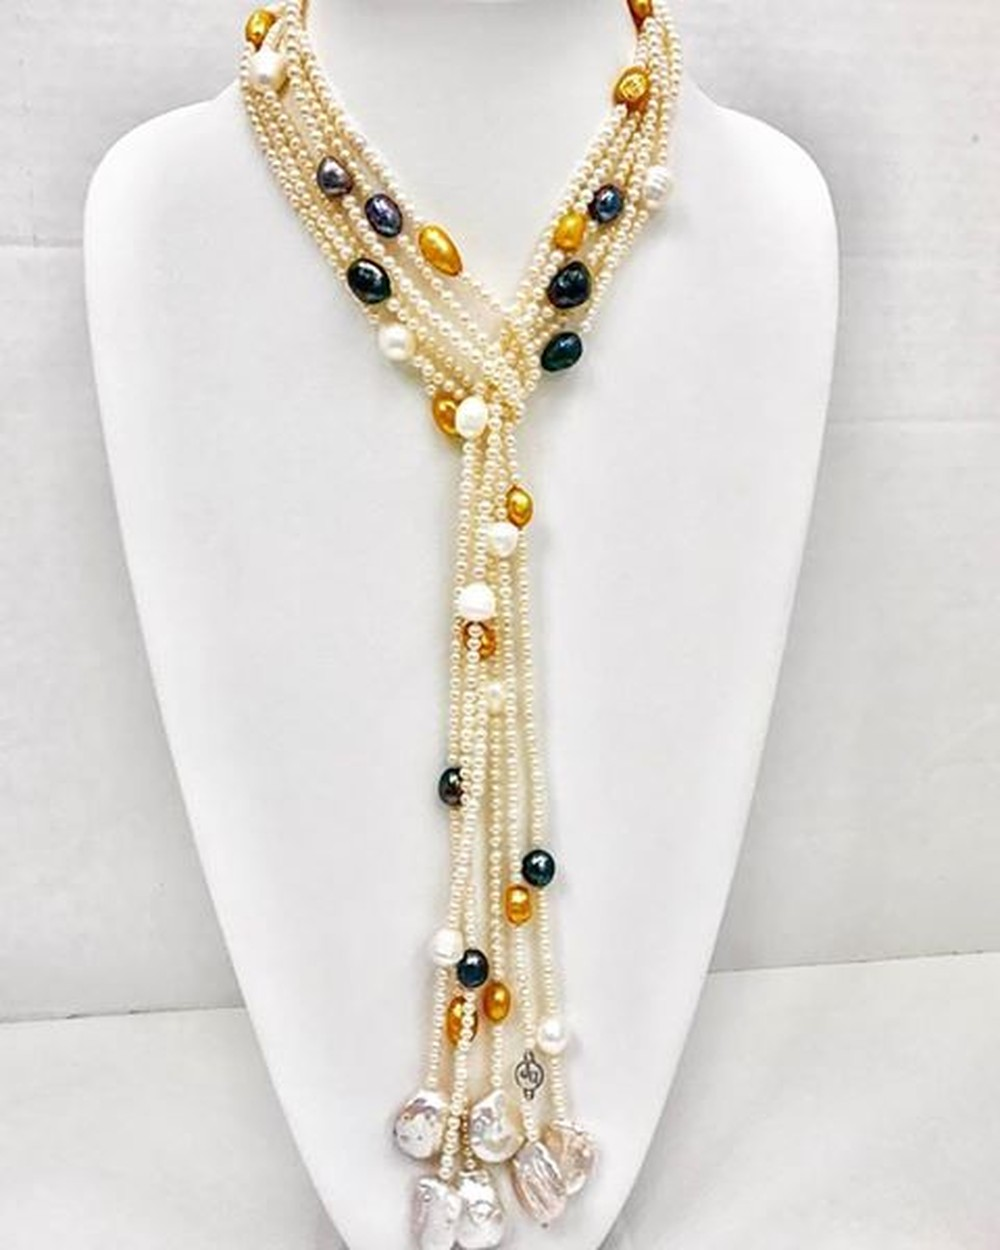 Triple Scarf Necklace in White, Black and Golden and BaroquePearl